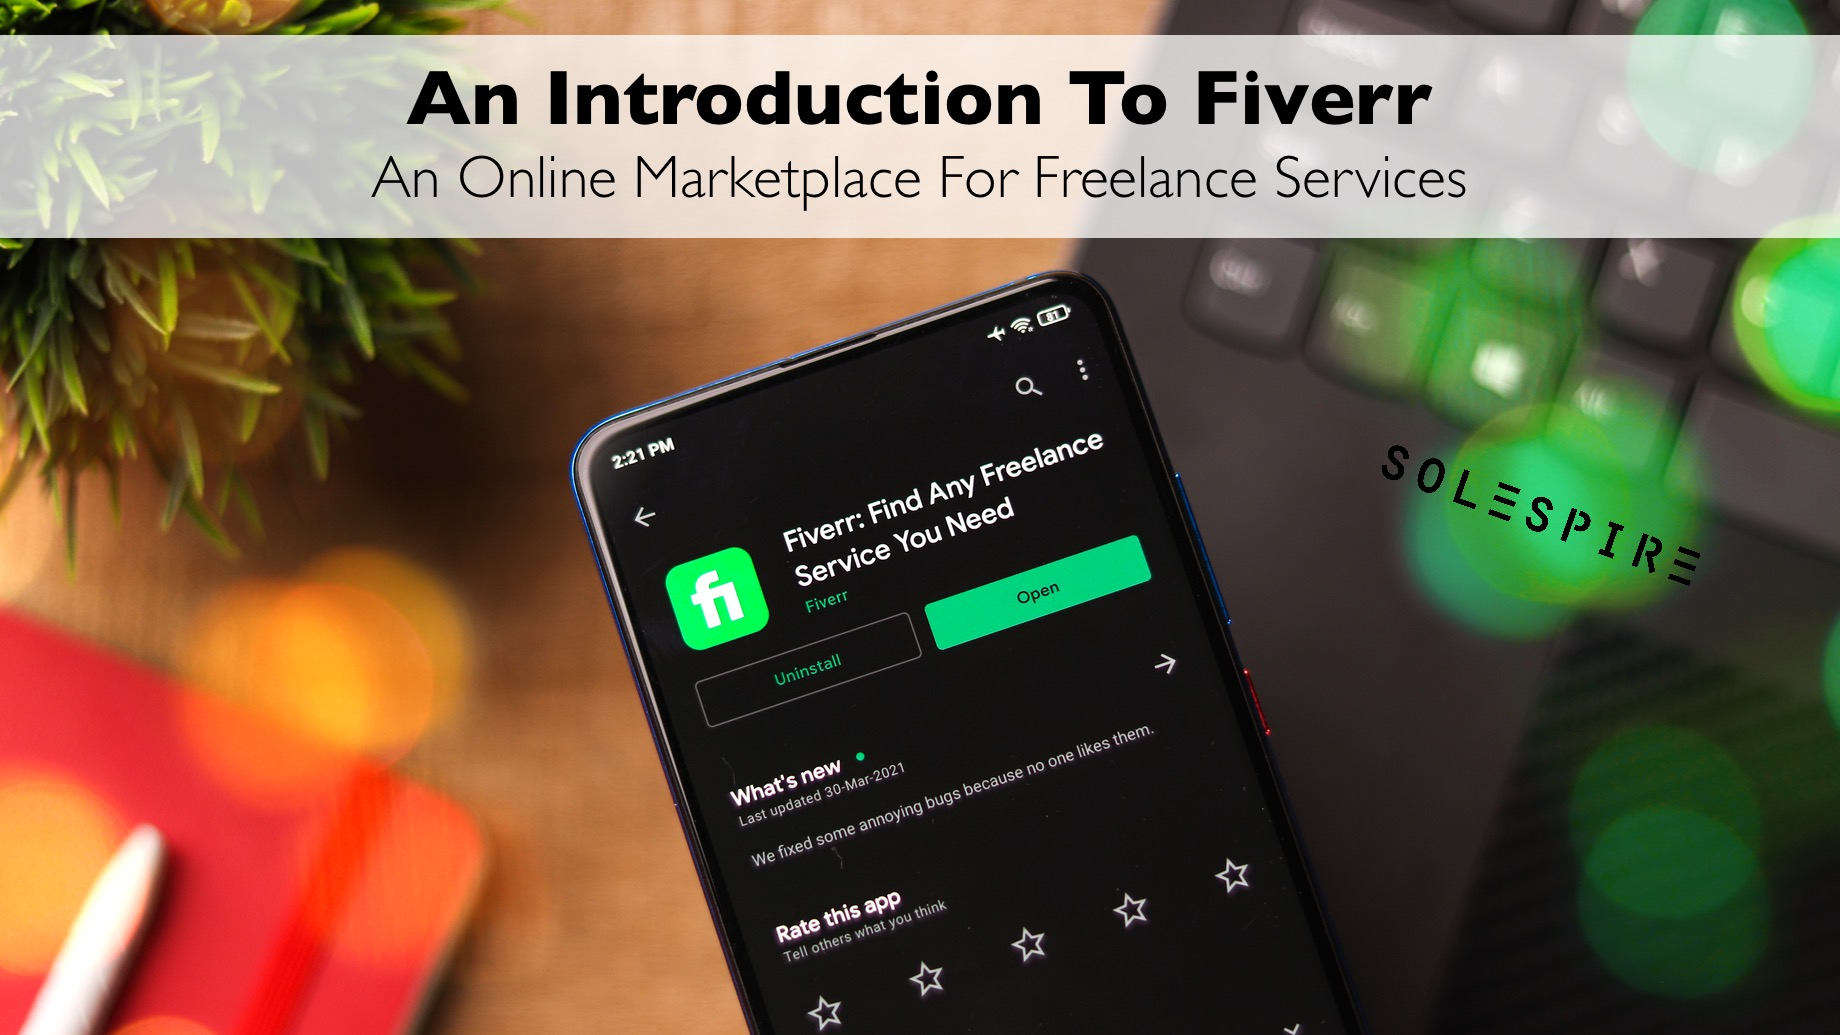 An Introduction To Fiverr - An Online Marketplace For Freelance Services